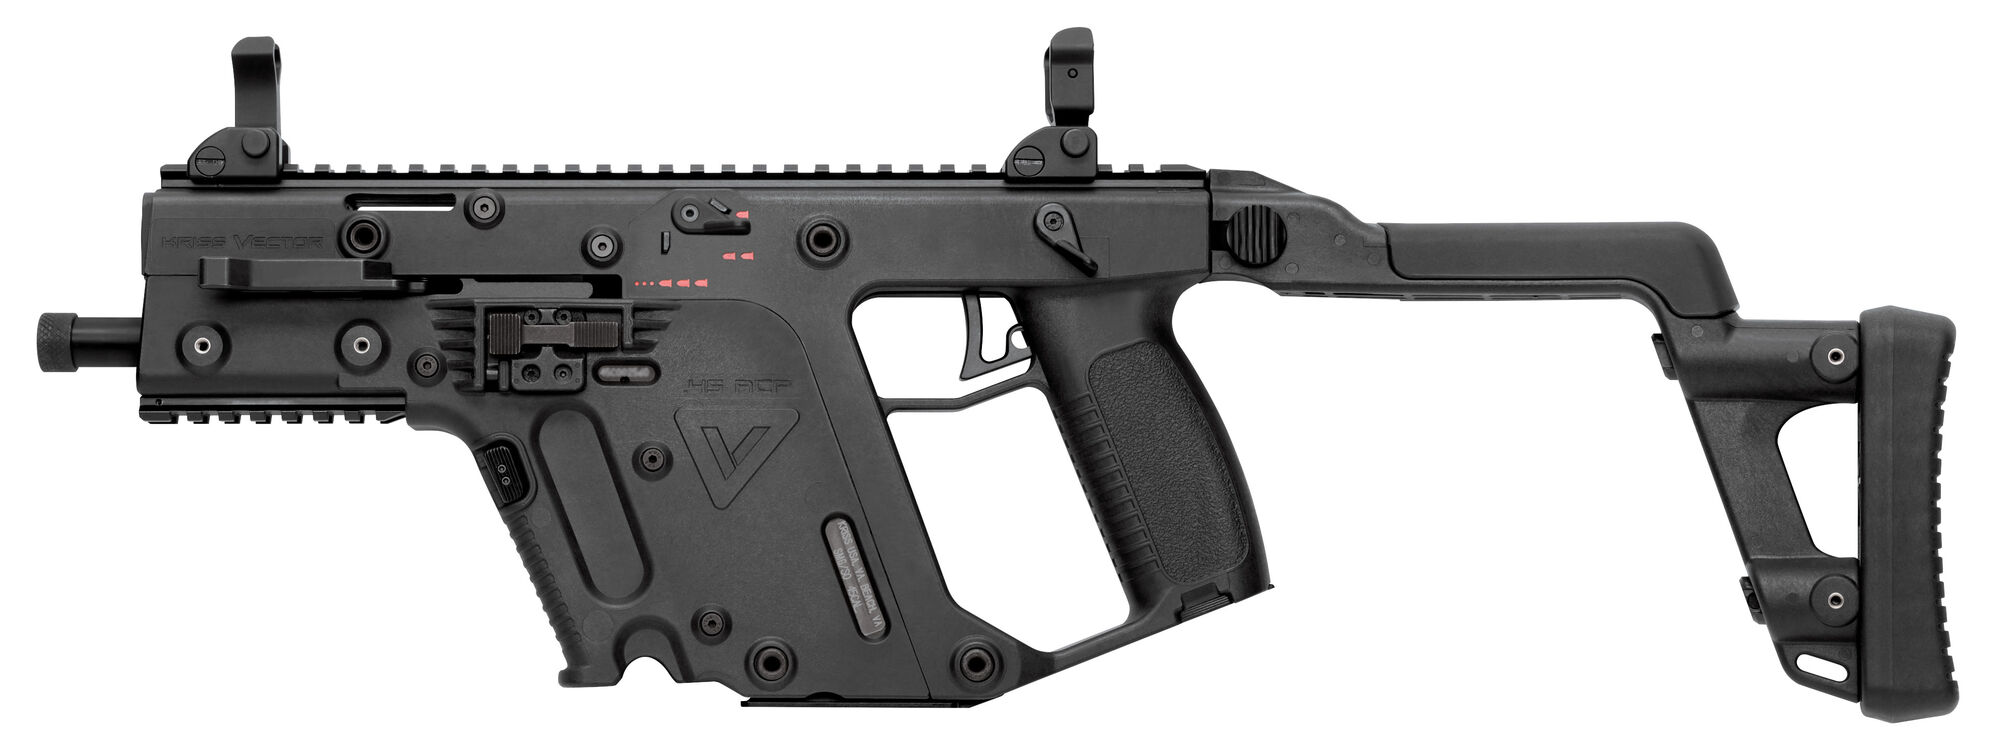 KRISS Vector | Gun Wiki | FANDOM powered by Wikia